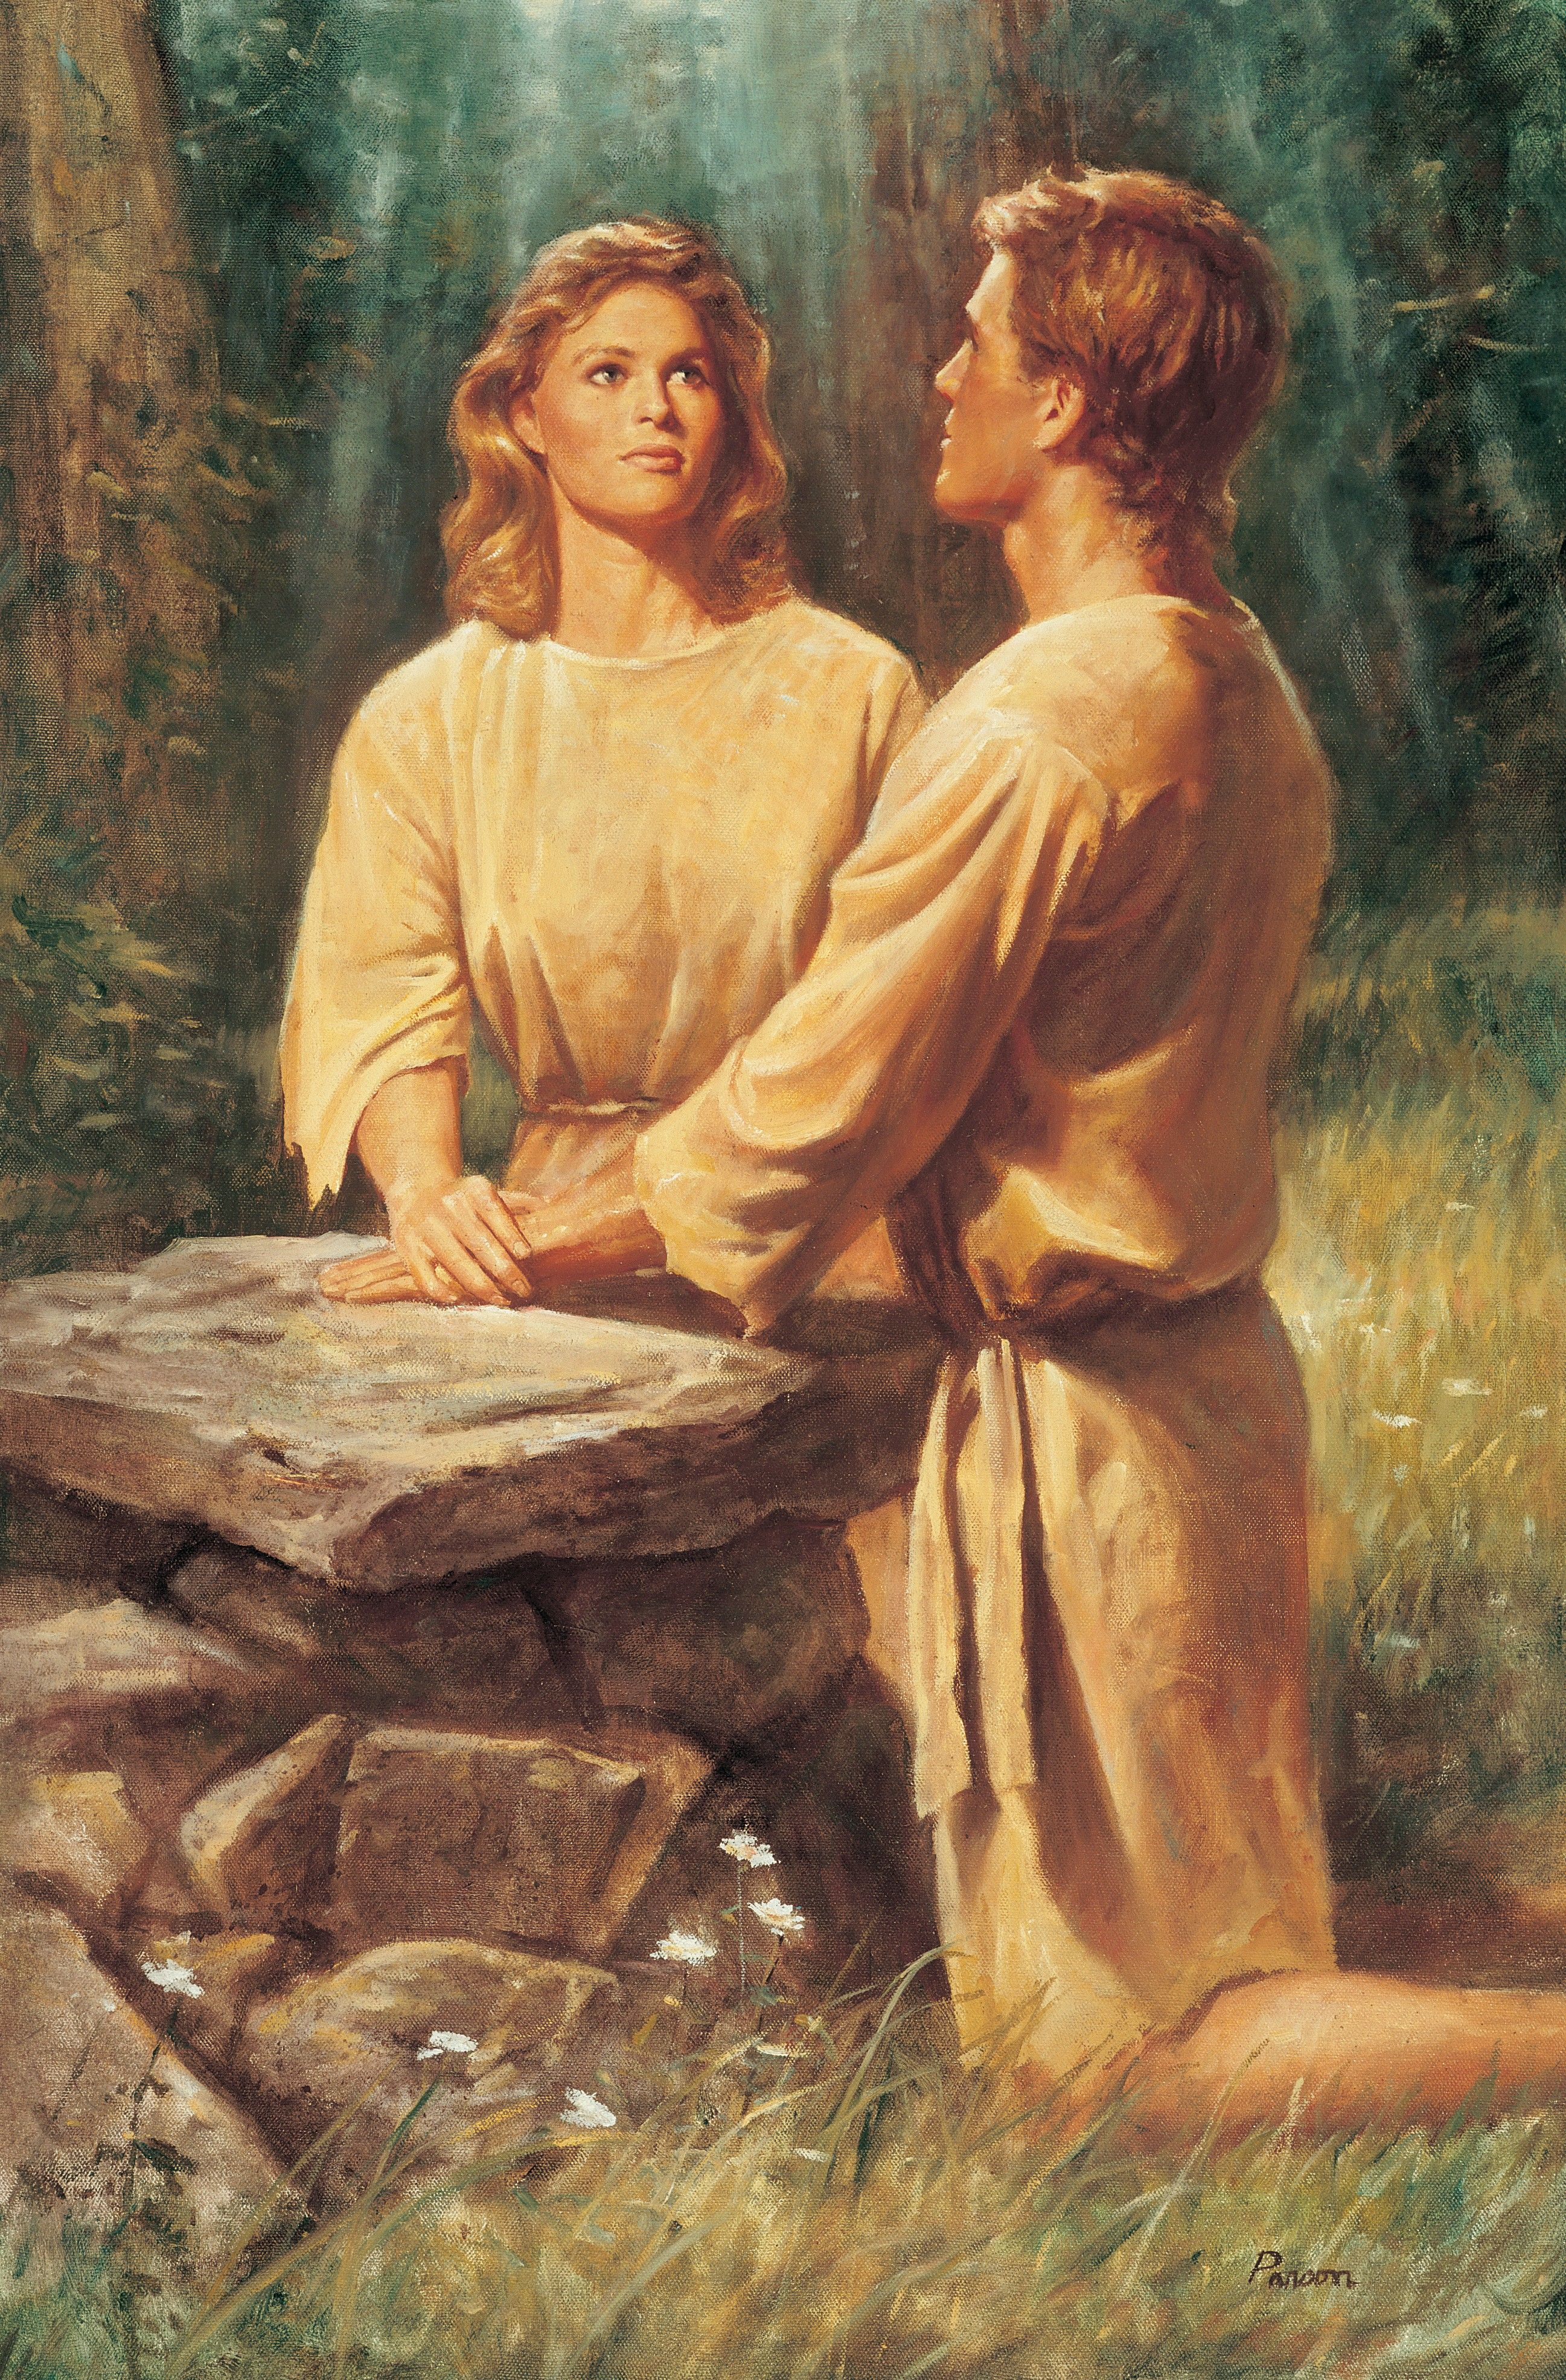 Adam and Eve Kneeling at an Altar, by Del Parson; GAB 4; Primary manual 5-56; Primary manual 6-05; 2 Nephi 2:17–25; Moses 5:4–11